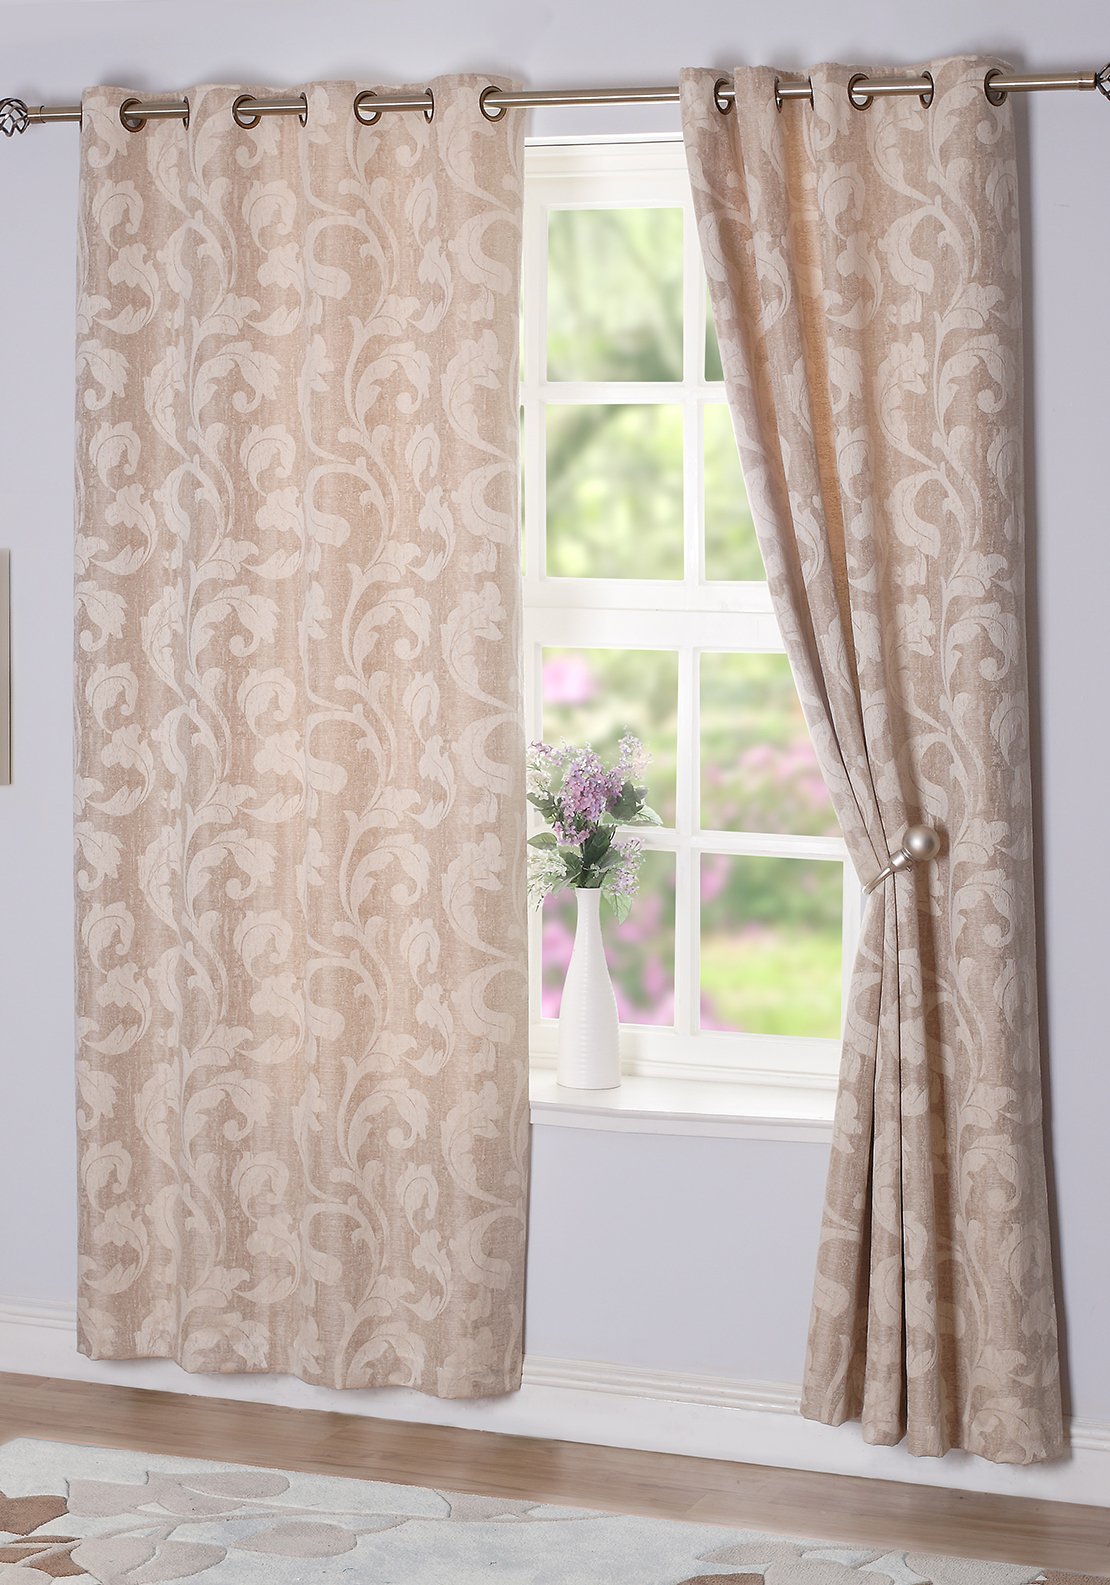 E.A. Delaney Rochelle Eyelet Curtains, Sand